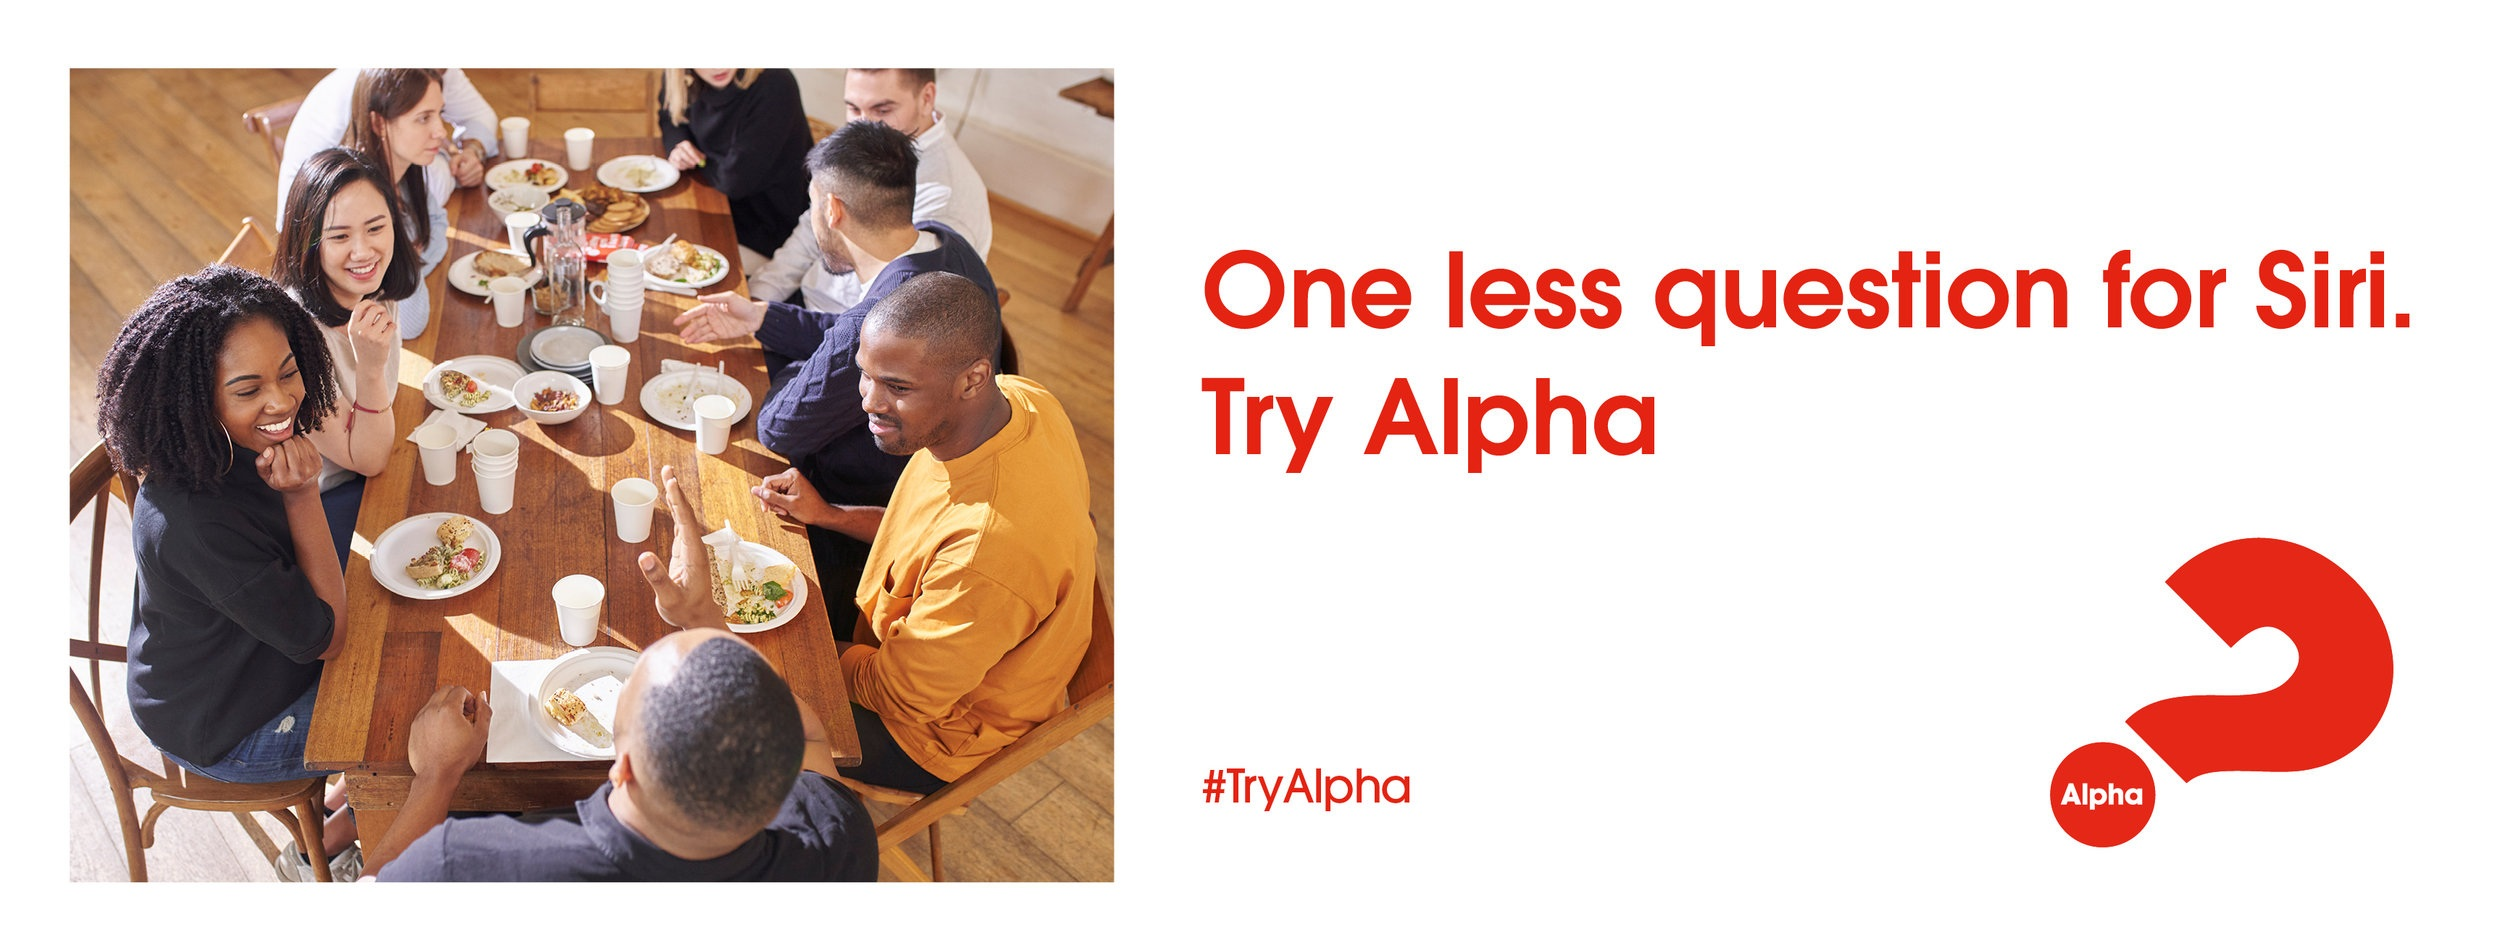 Alpha_Invite 2019_Facebook banners_One less question_3.jpg